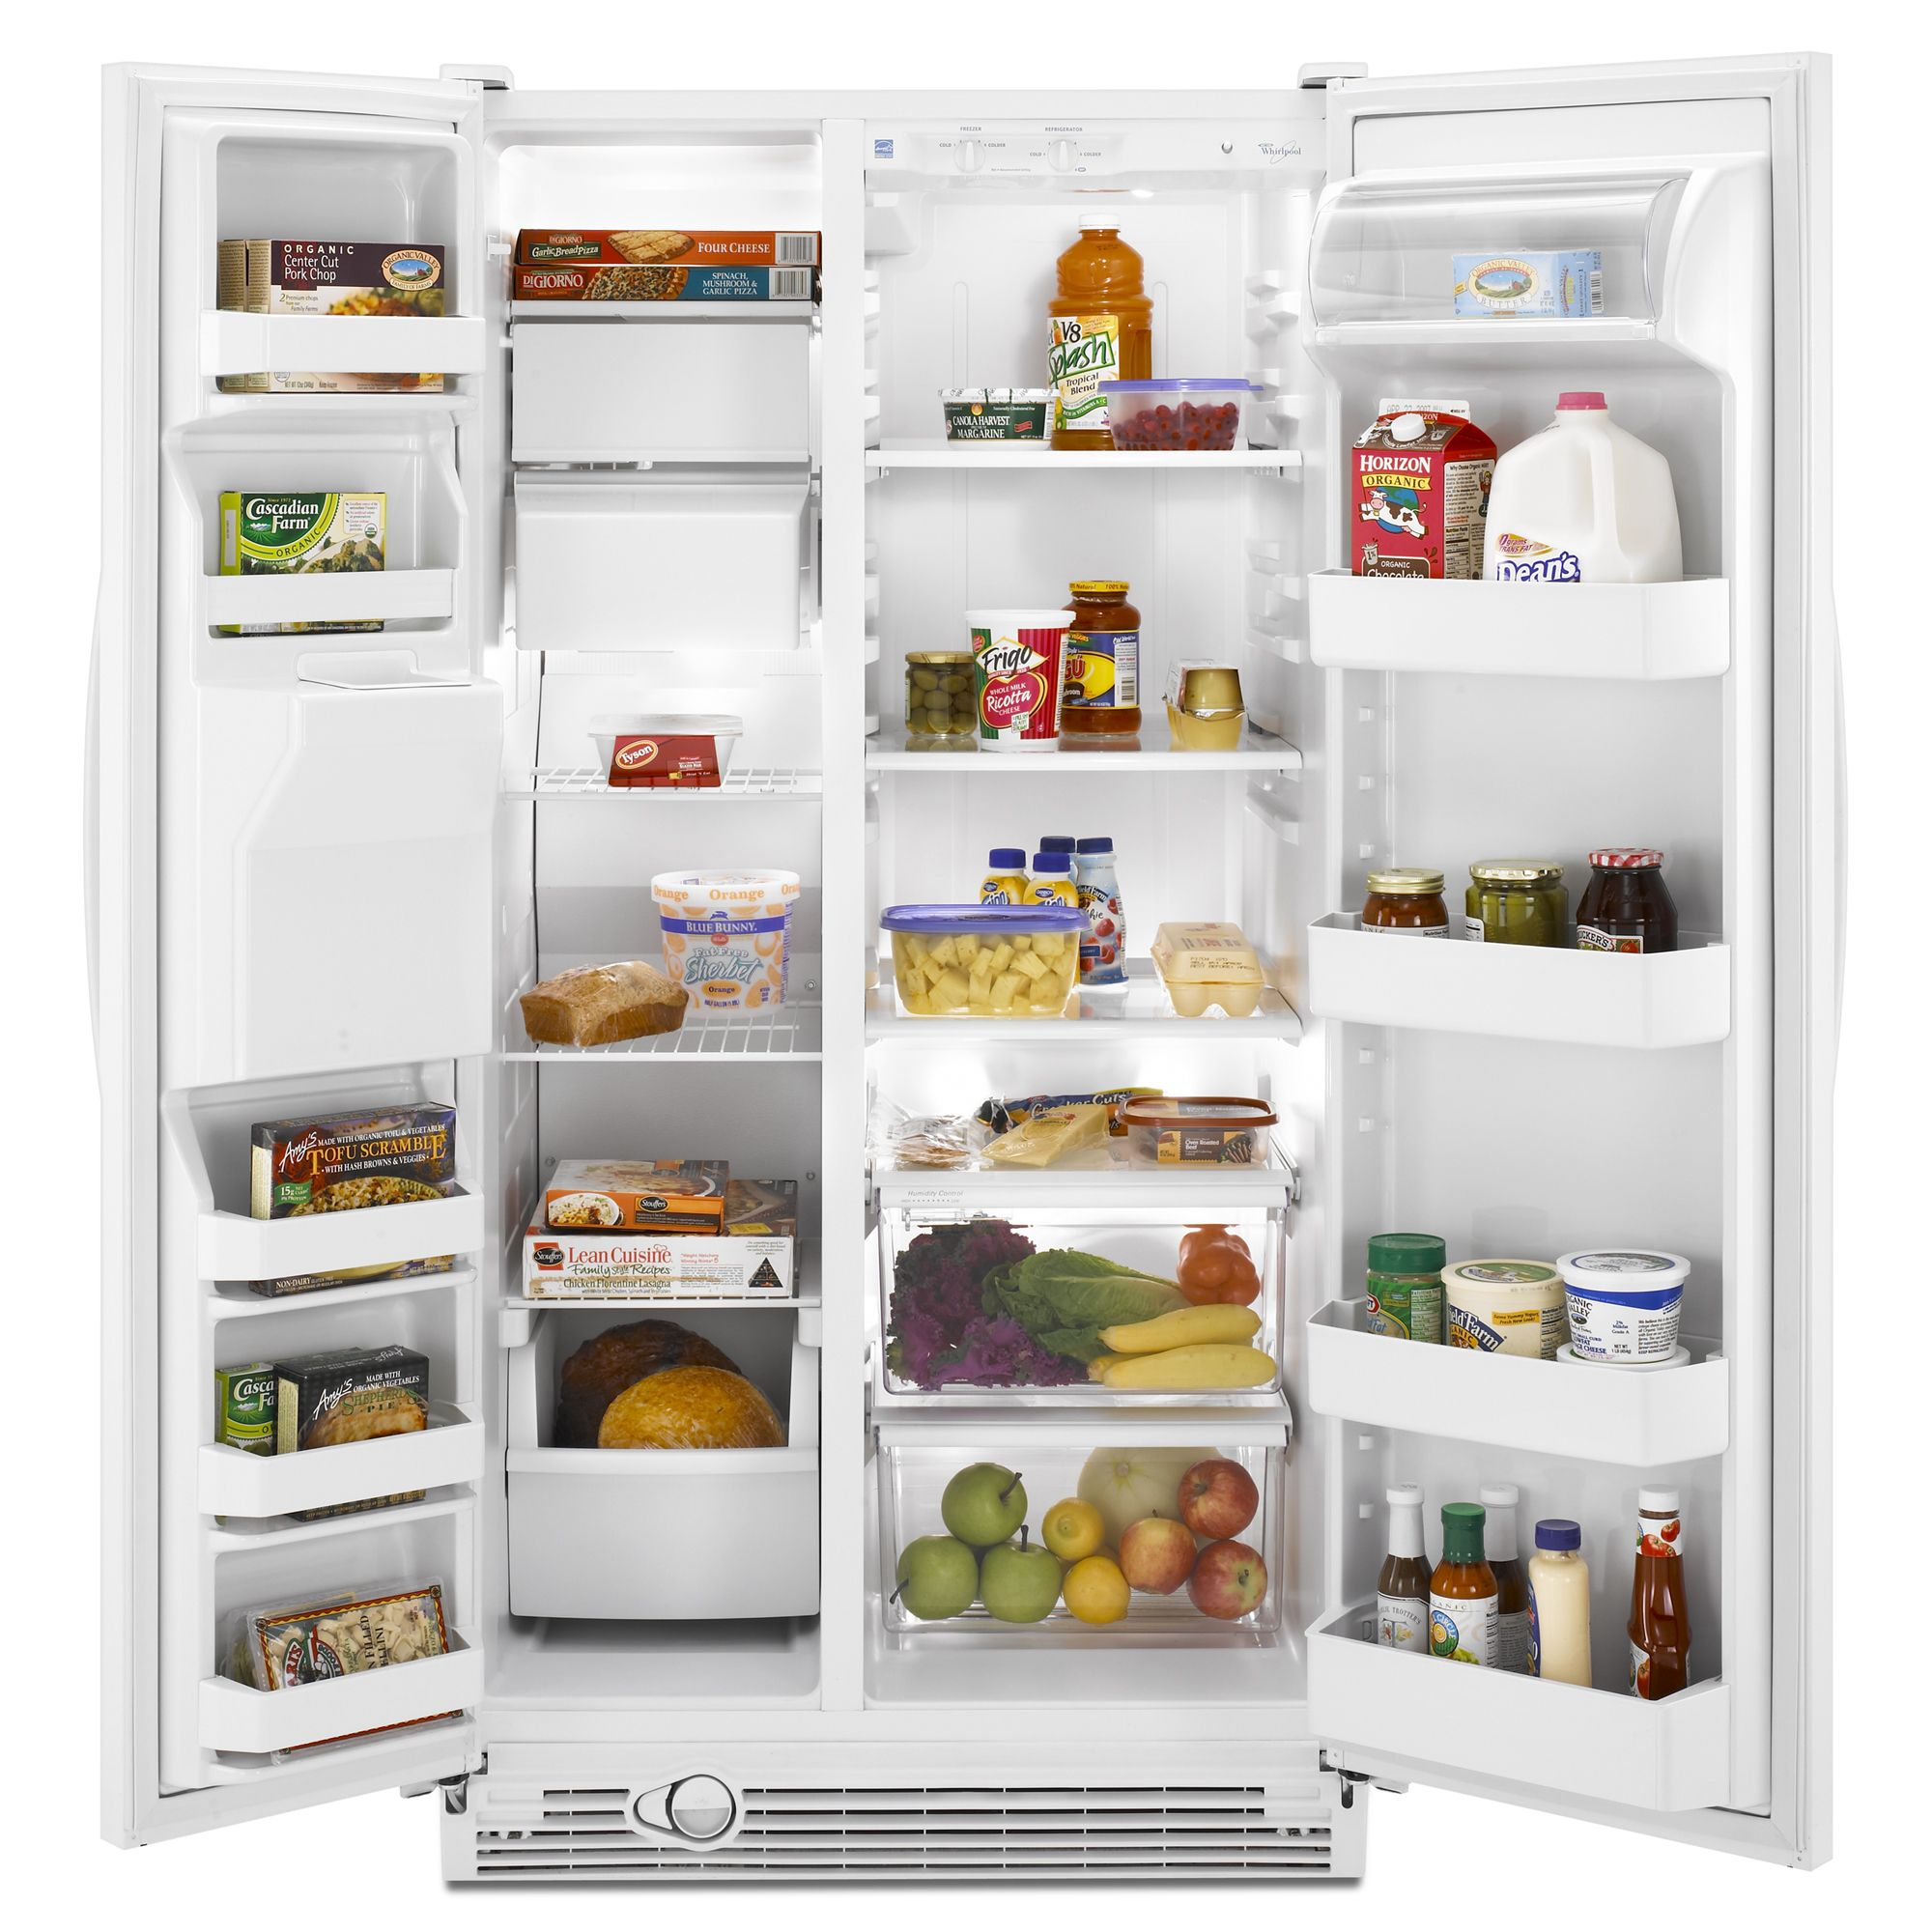 Whirlpool 25.1 cu. ft. Side-By-Side Refrigerator - White